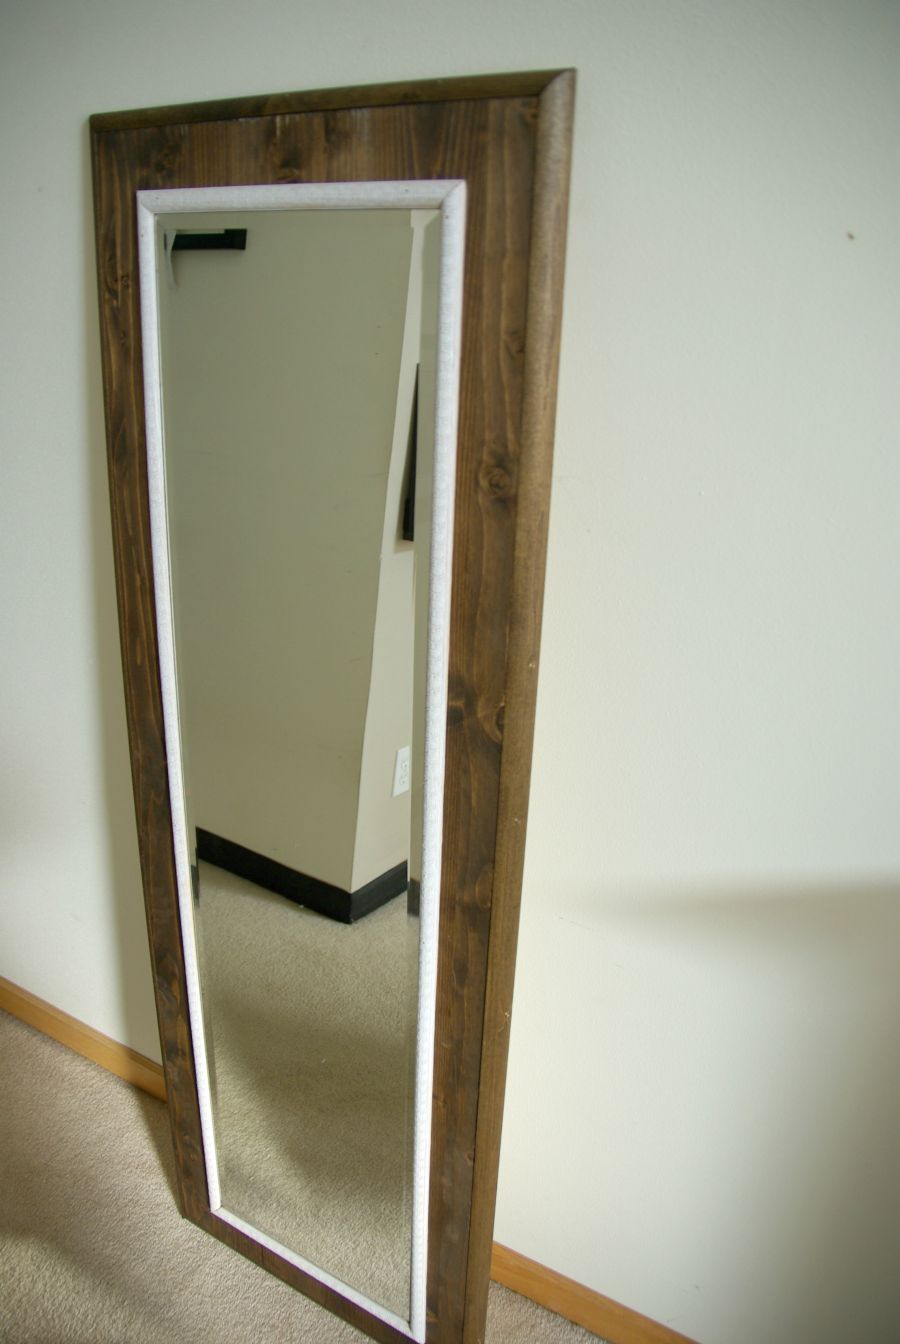 Diy floor mirror frame solutioingenieria Choice Image